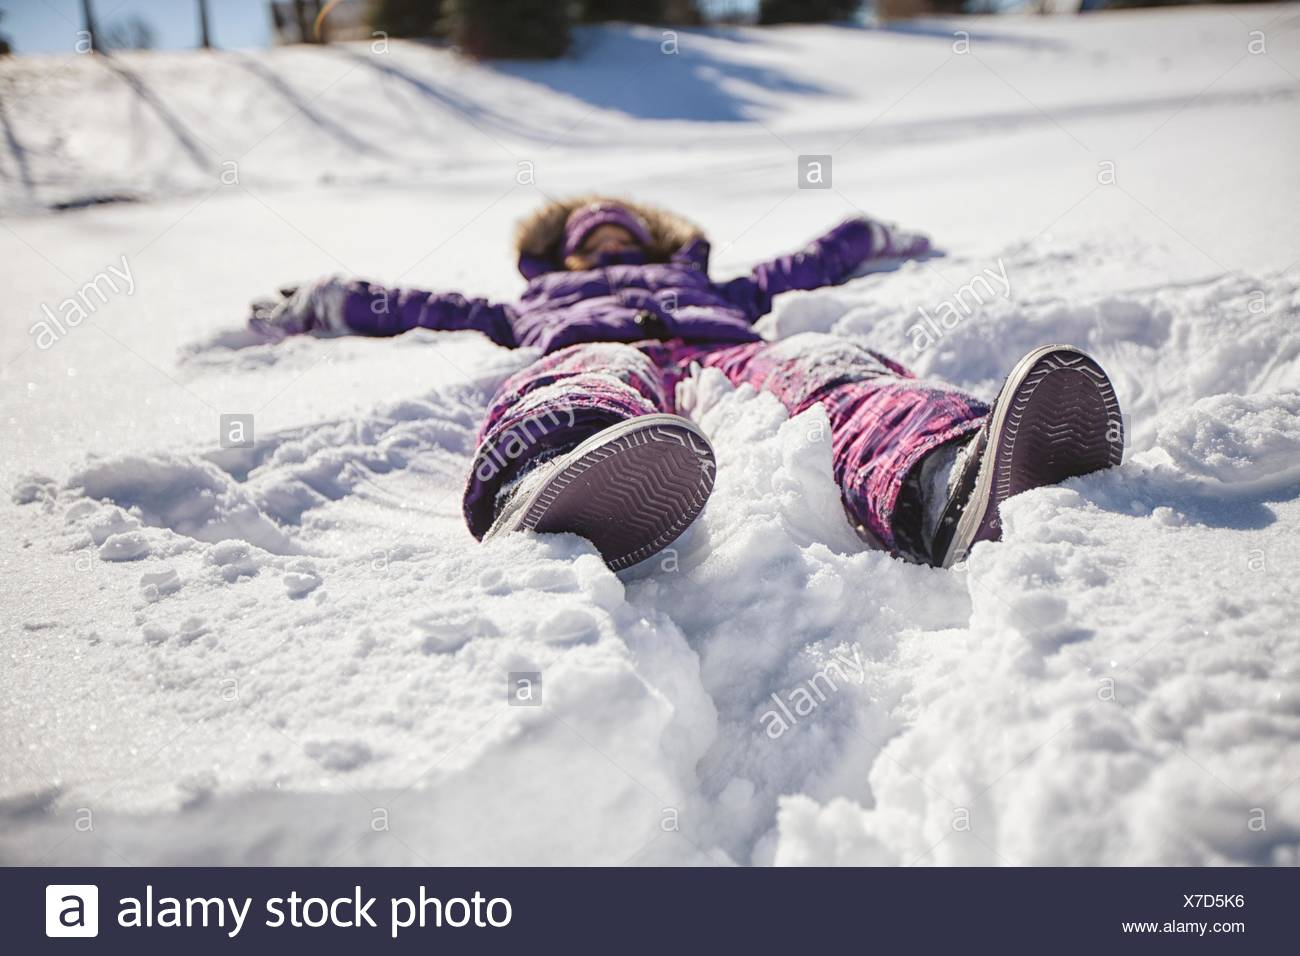 Surface level view of girl wearing ski suit lying snow making snow angel - Stock Image